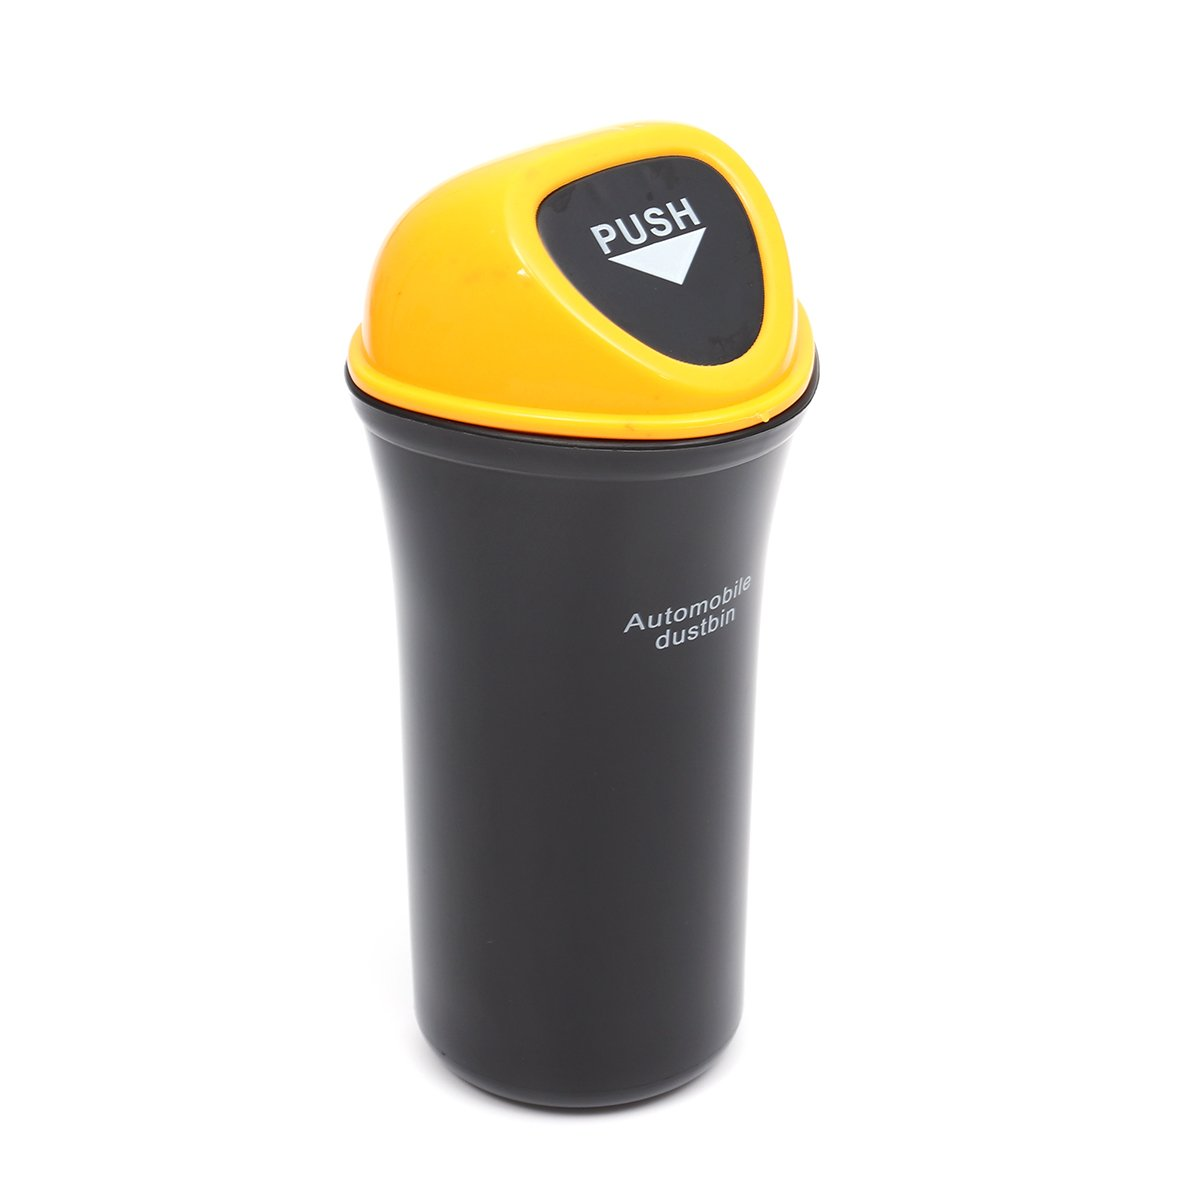 LIOOBO Car Mini Trash Can with Lid and Hook Garbage Dust Rubbish Bin Leakproof Hanging Storage Box Holder for Car